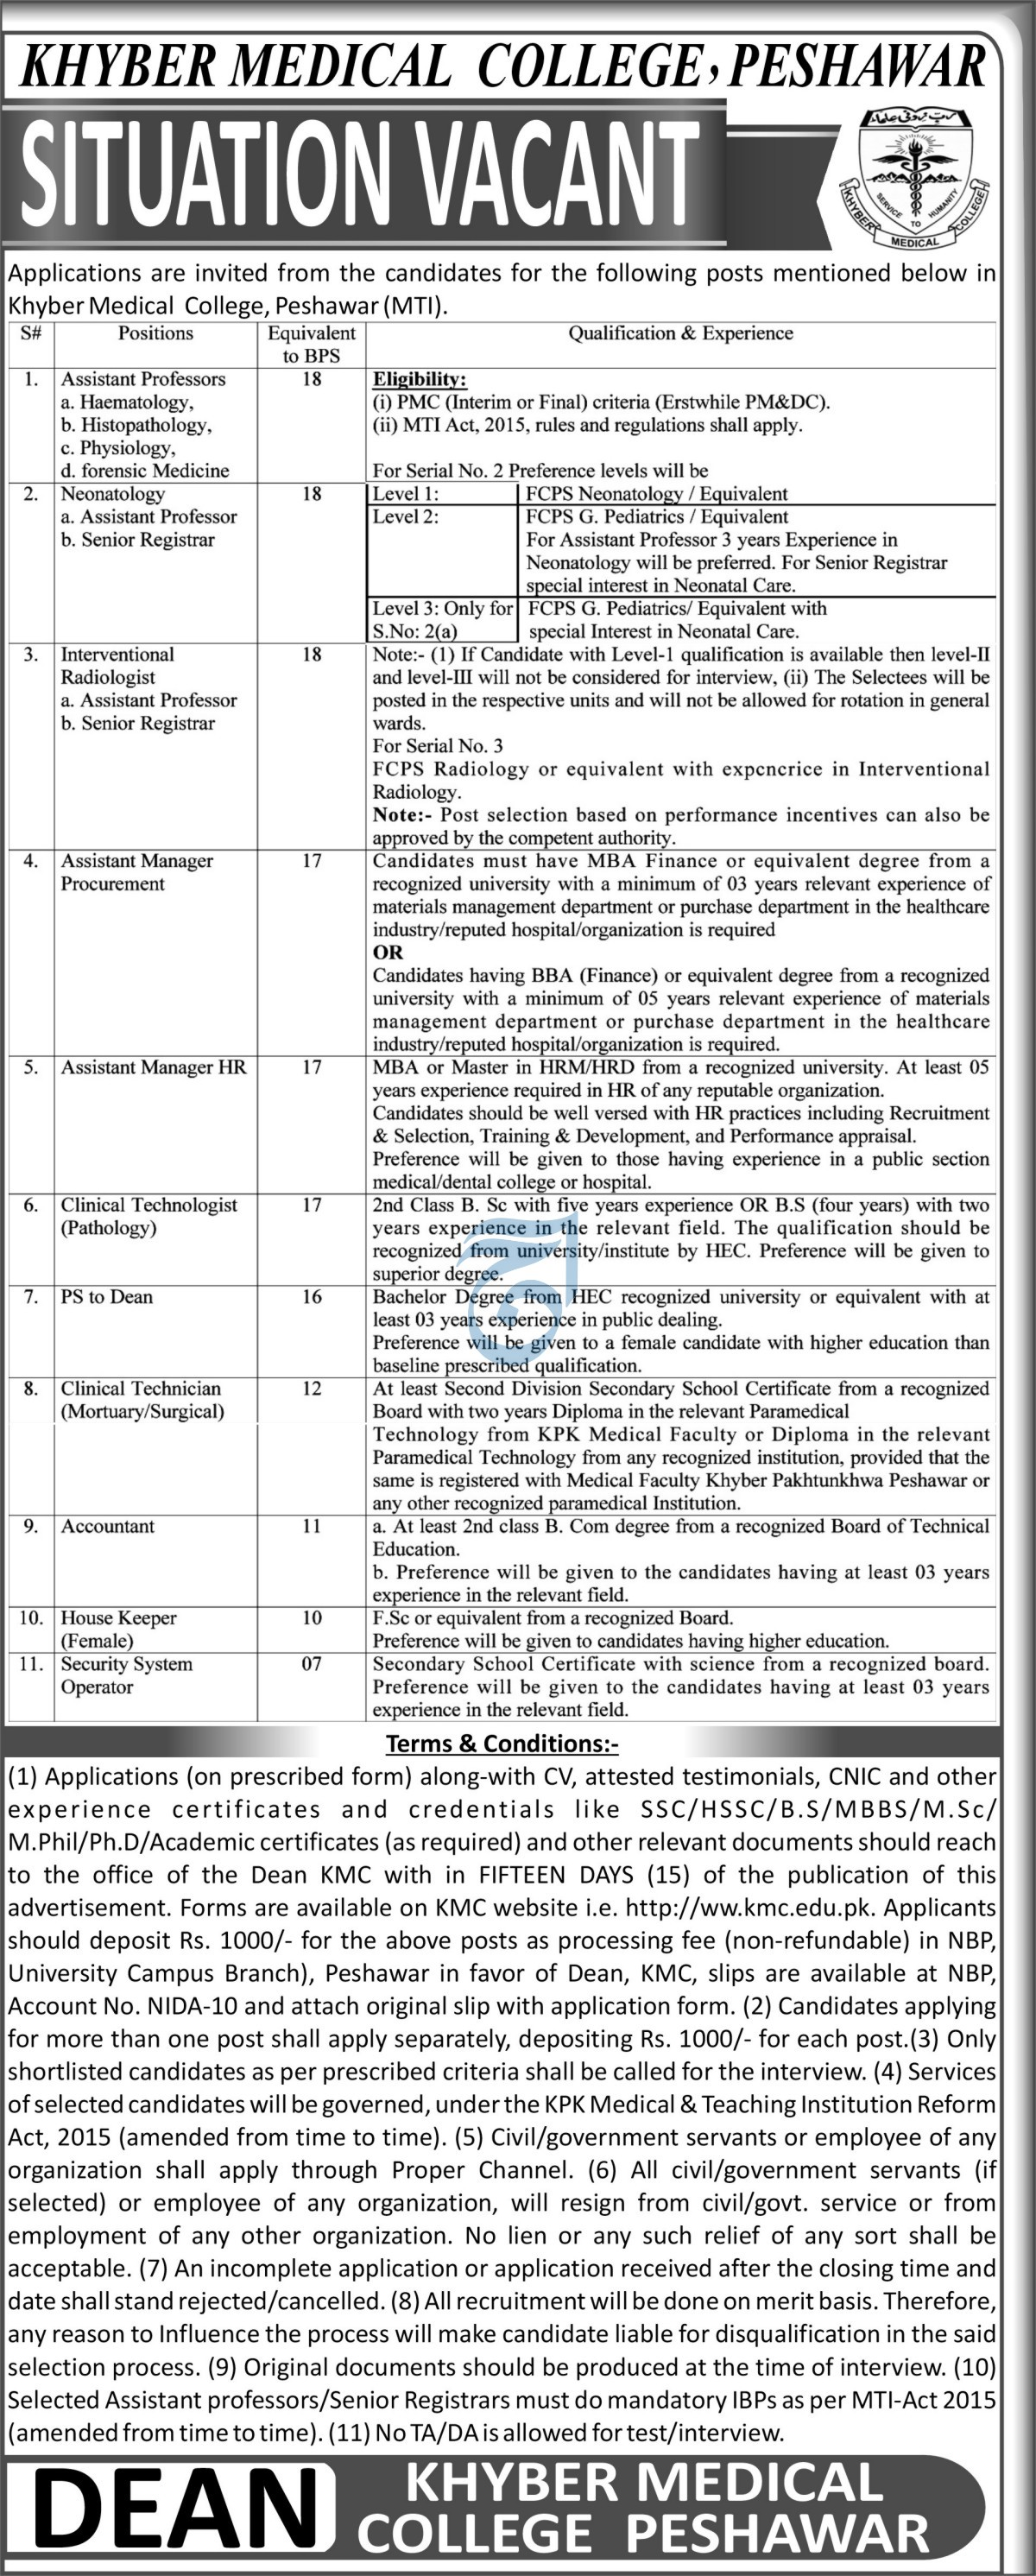 Khyber Medical College jobs newspaper ad for Security System Operator in Peshawar on 2021-01-12